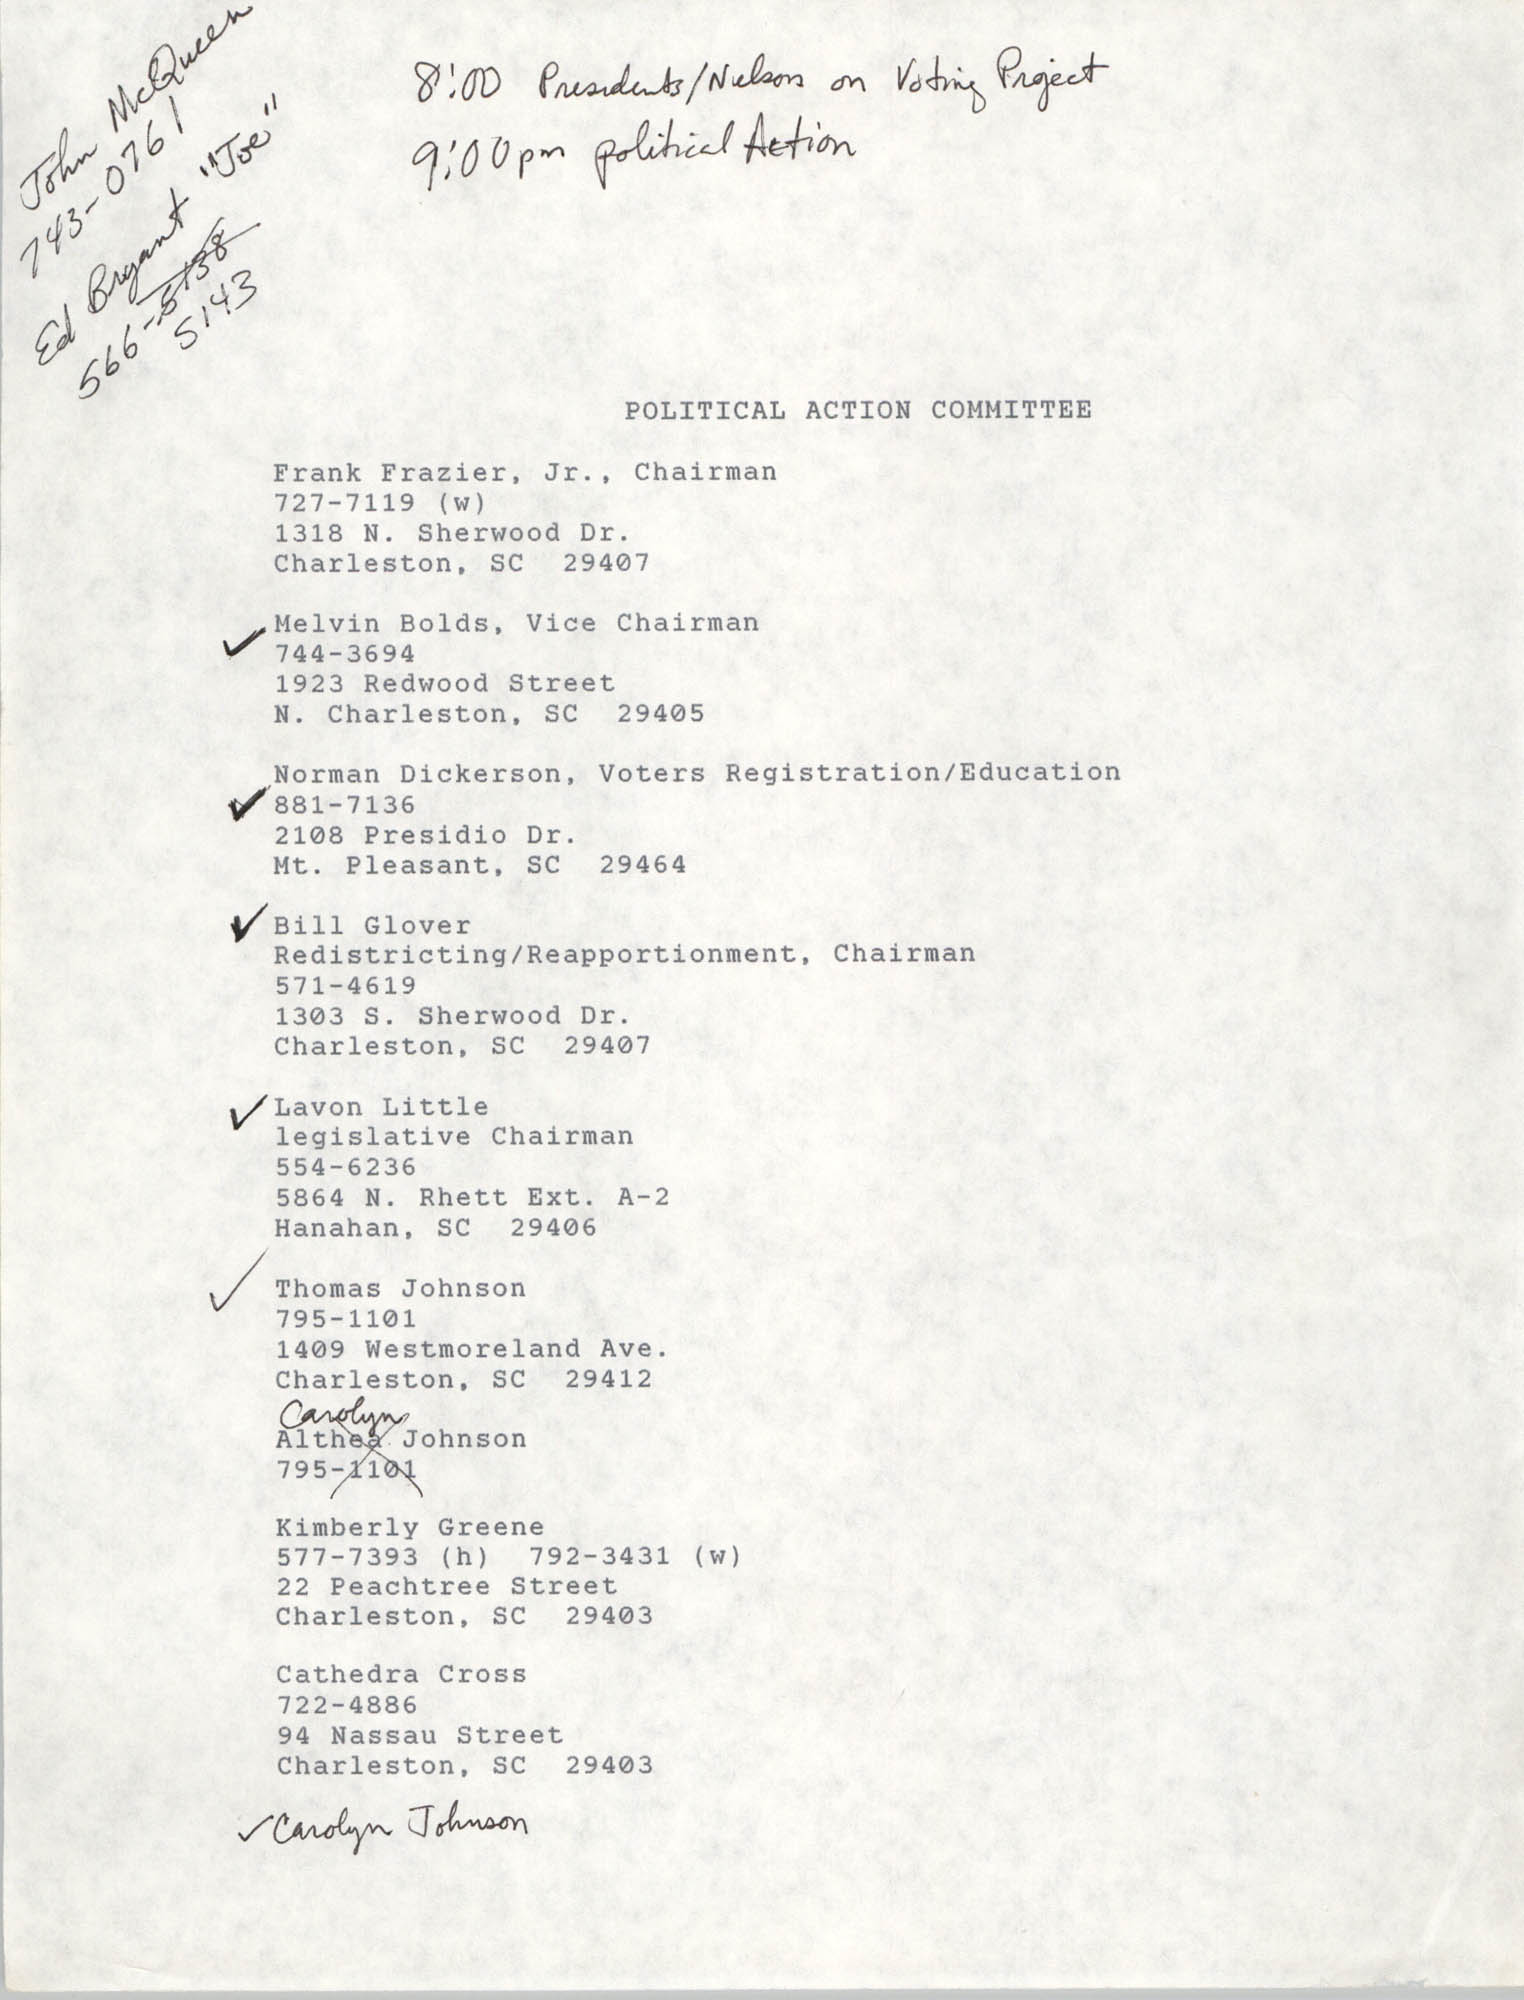 List of Members, Political Action Committee, Charleston Branch of  the NAACP